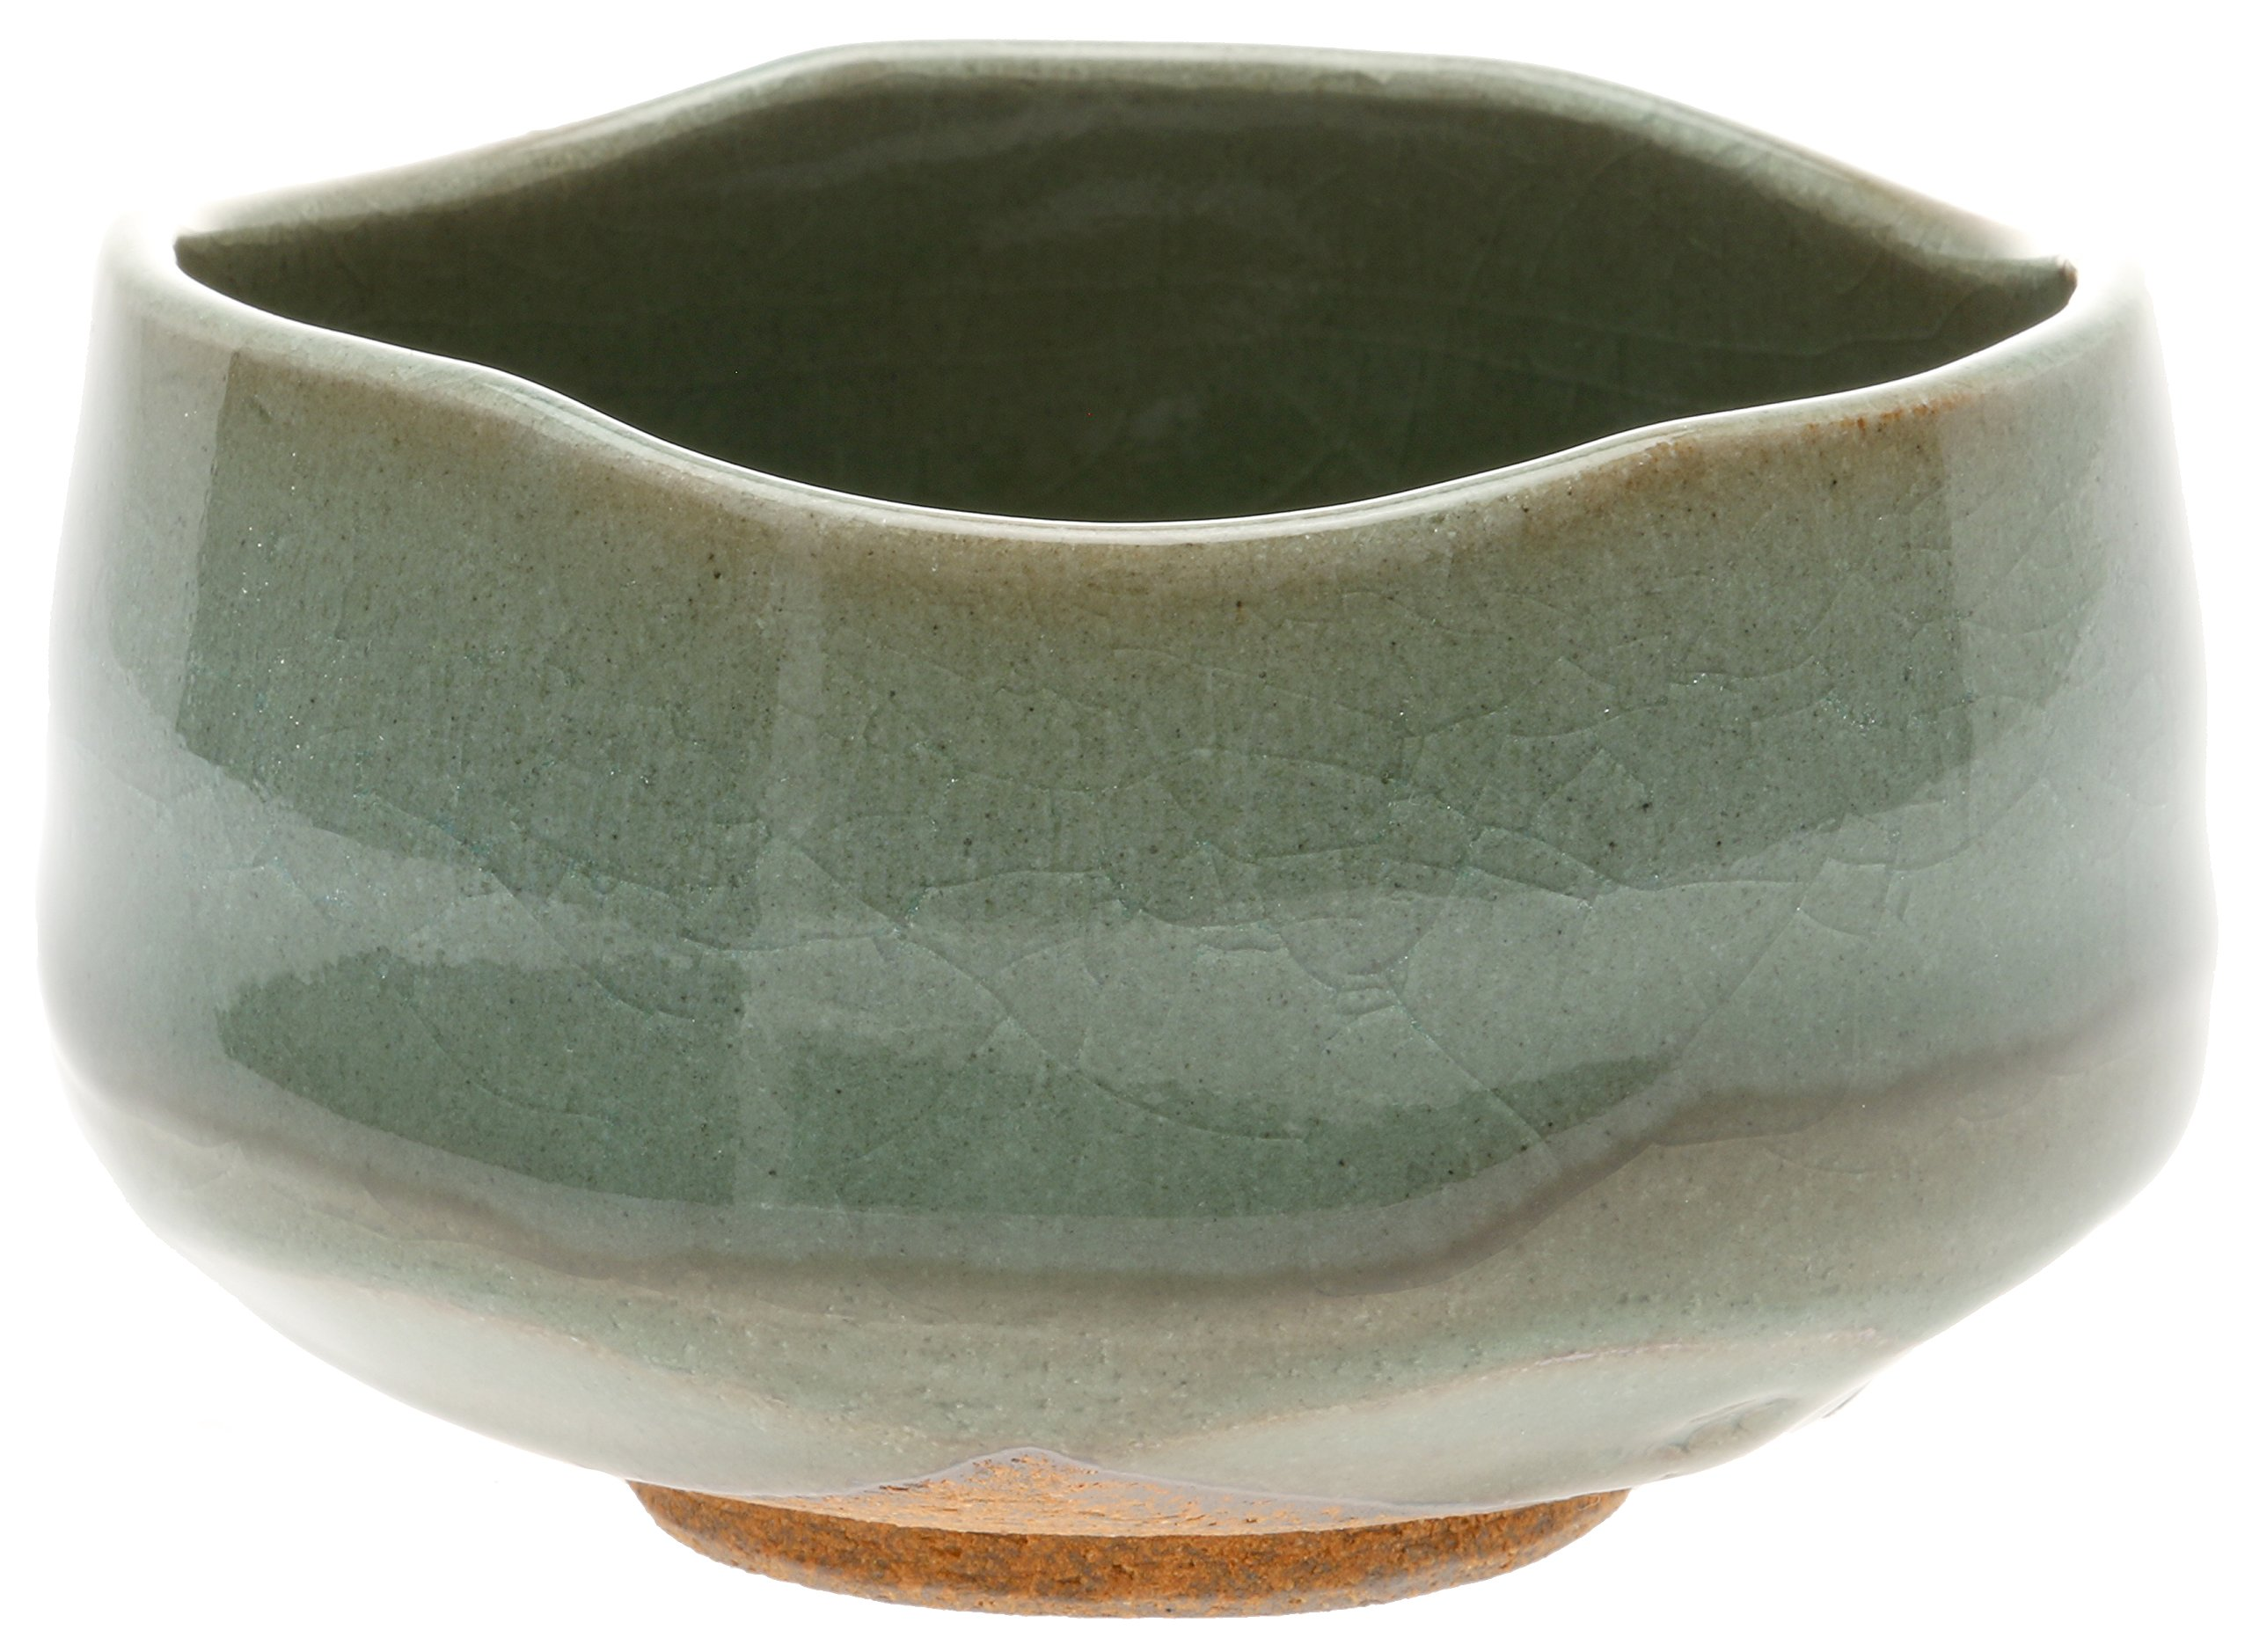 Kotobuki Matcha Chawan Japanese Tea Bowl, Winter Plum Blossom